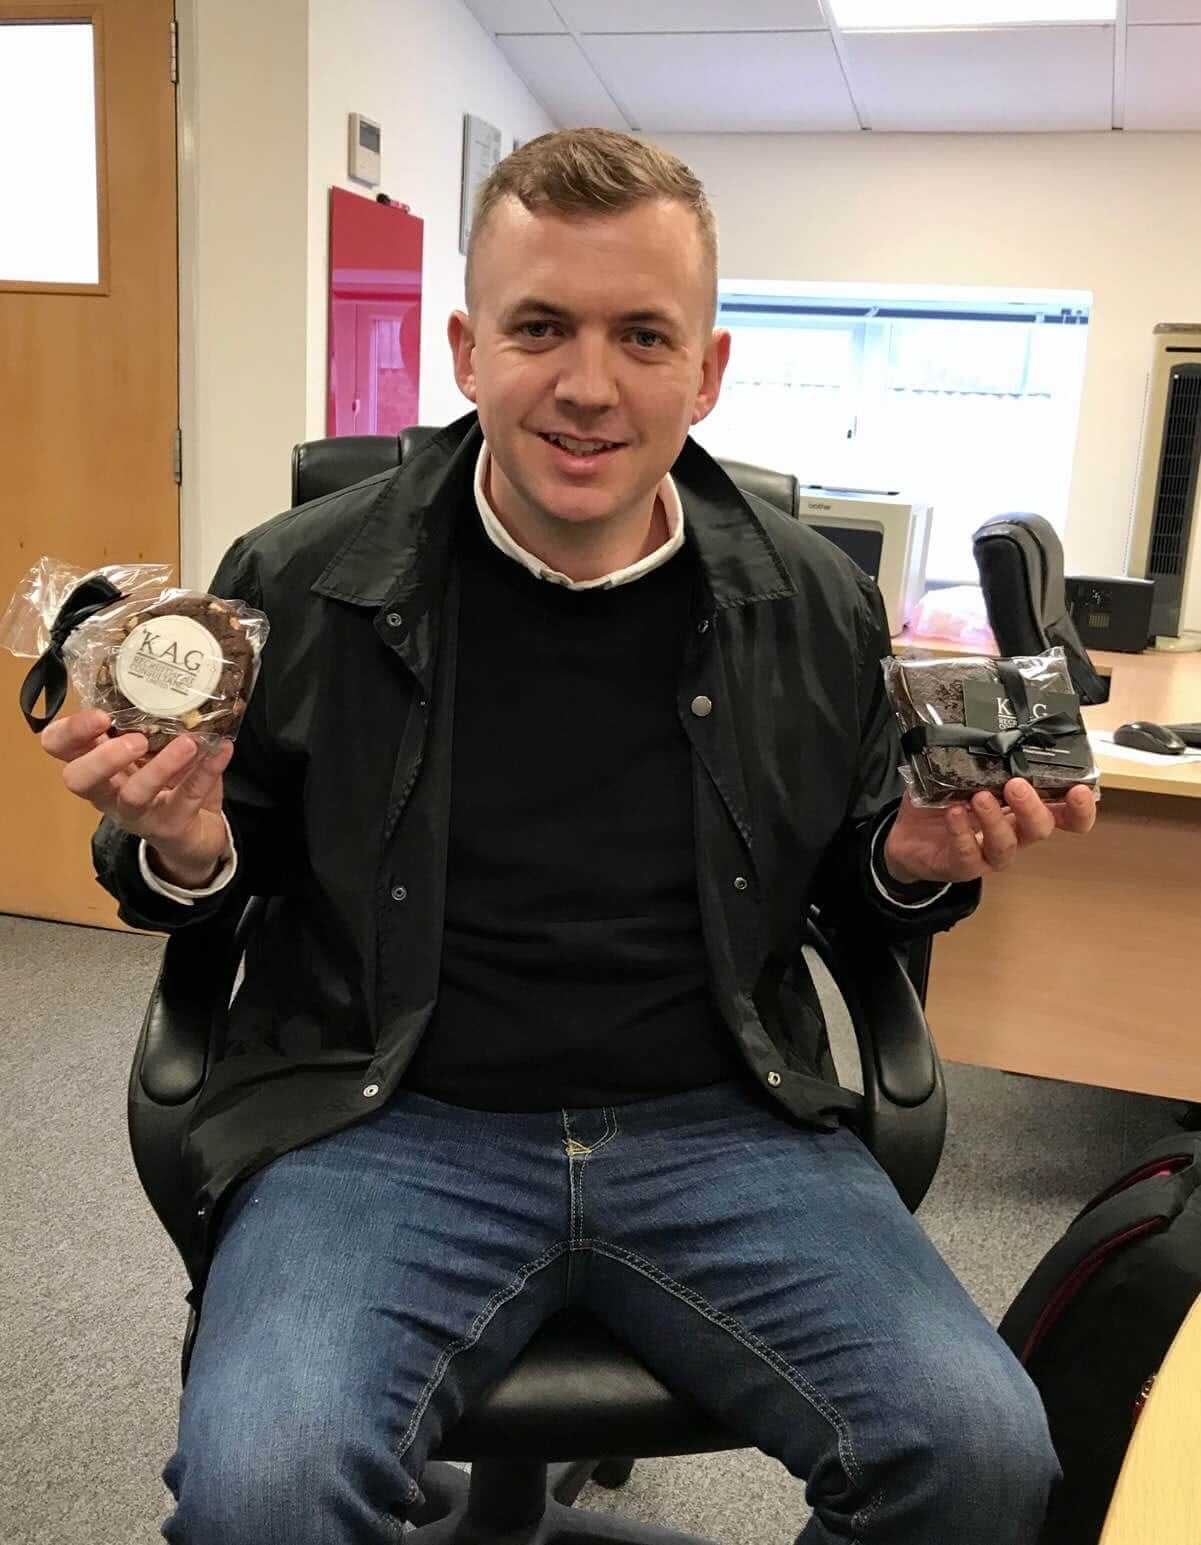 a man wearing black shirt and black jacket and holding chocolates in both hands